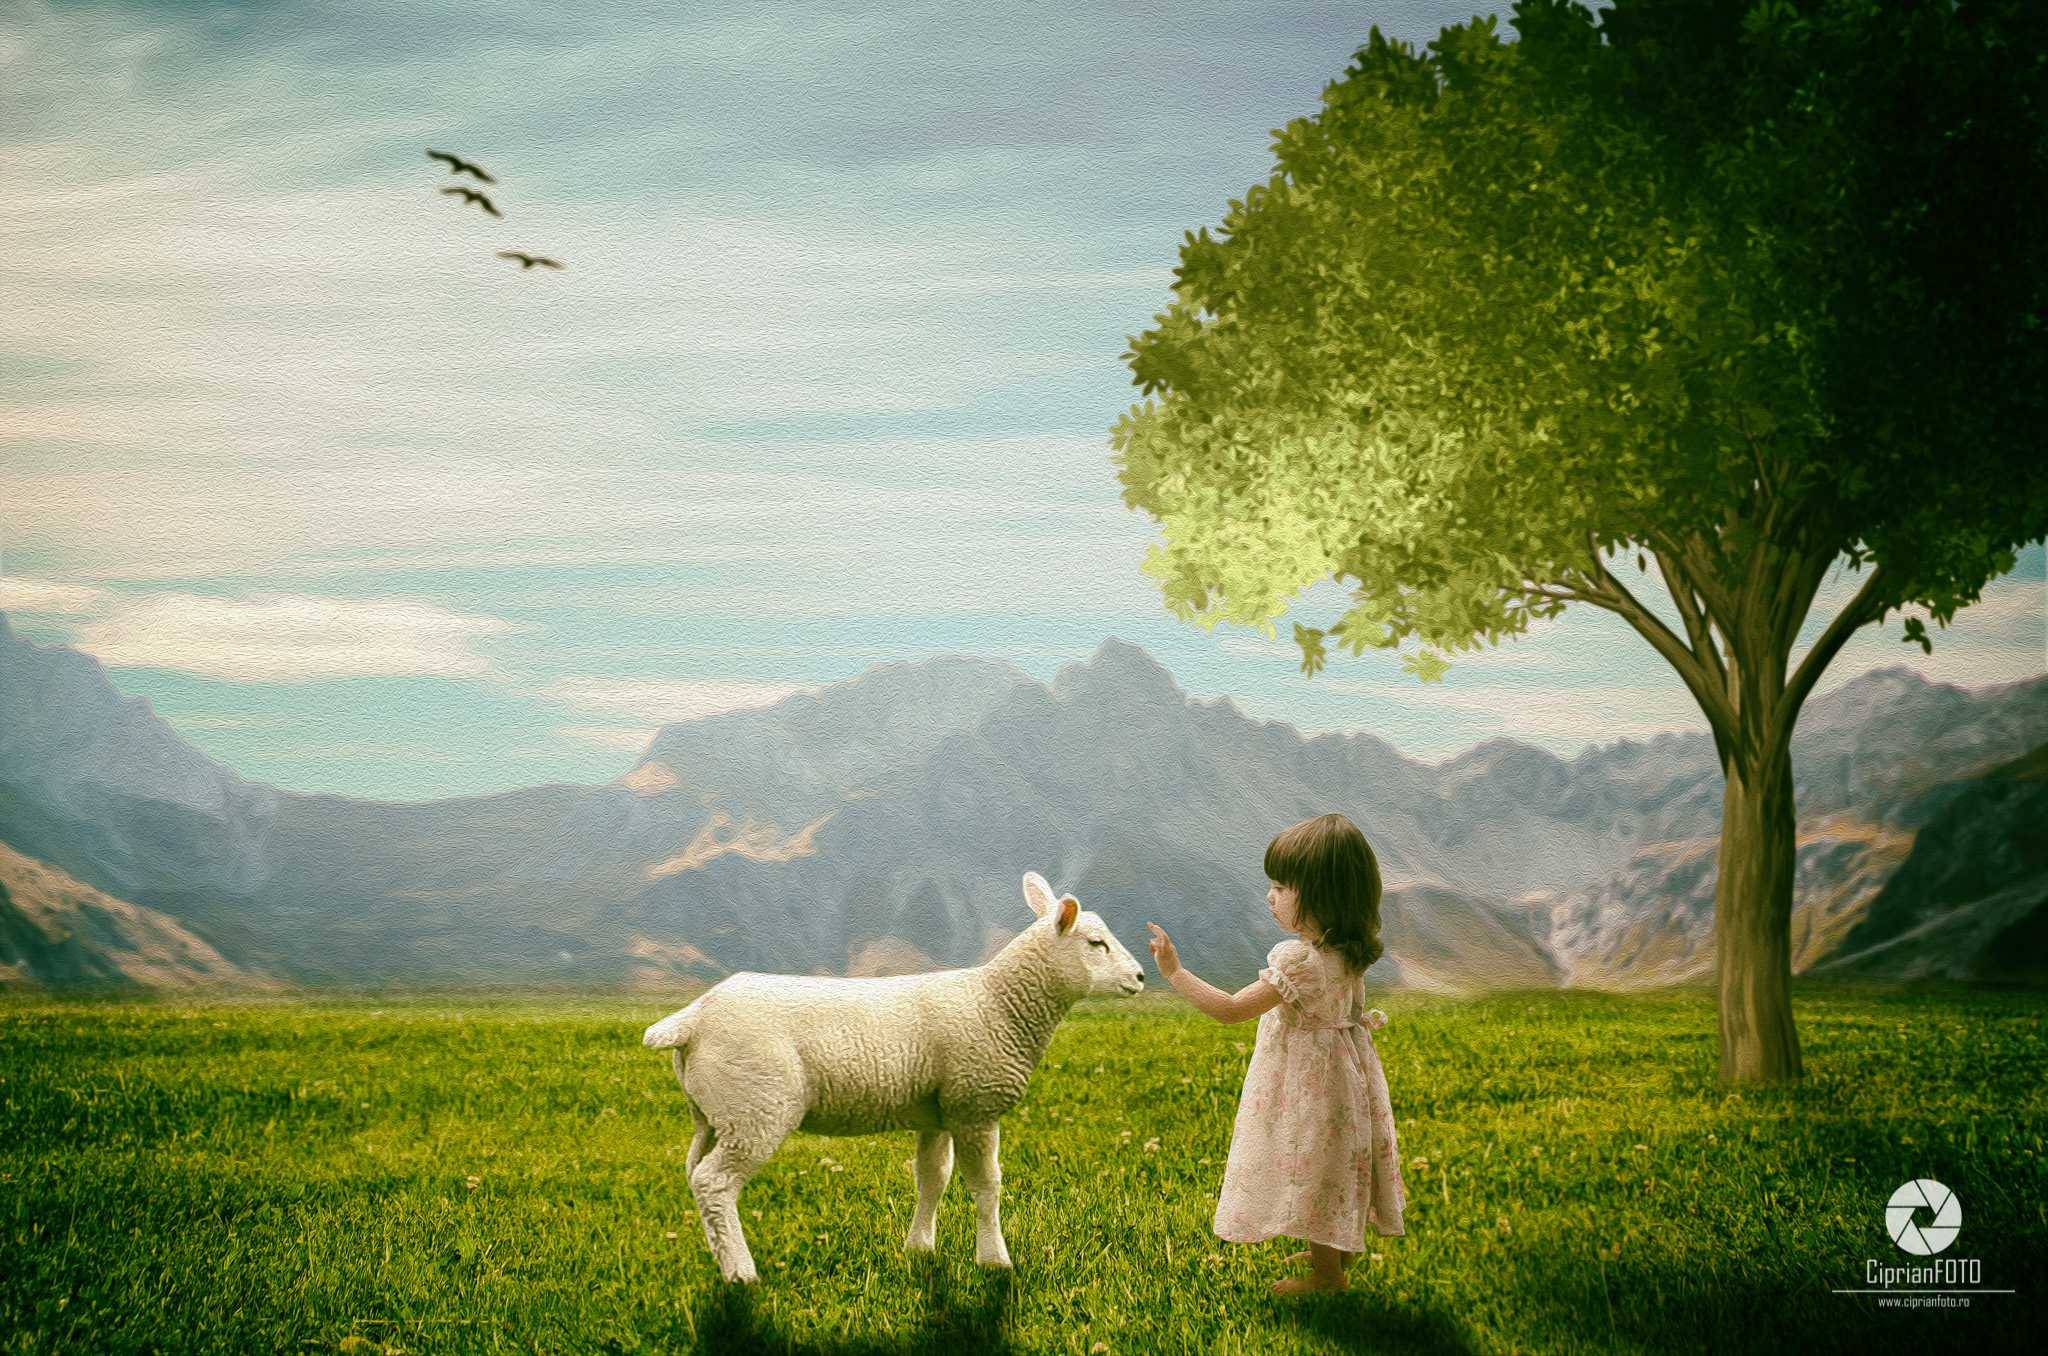 Little Girl And Sheep, Photoshop Manipulation Tutorial, CiprianFOTO